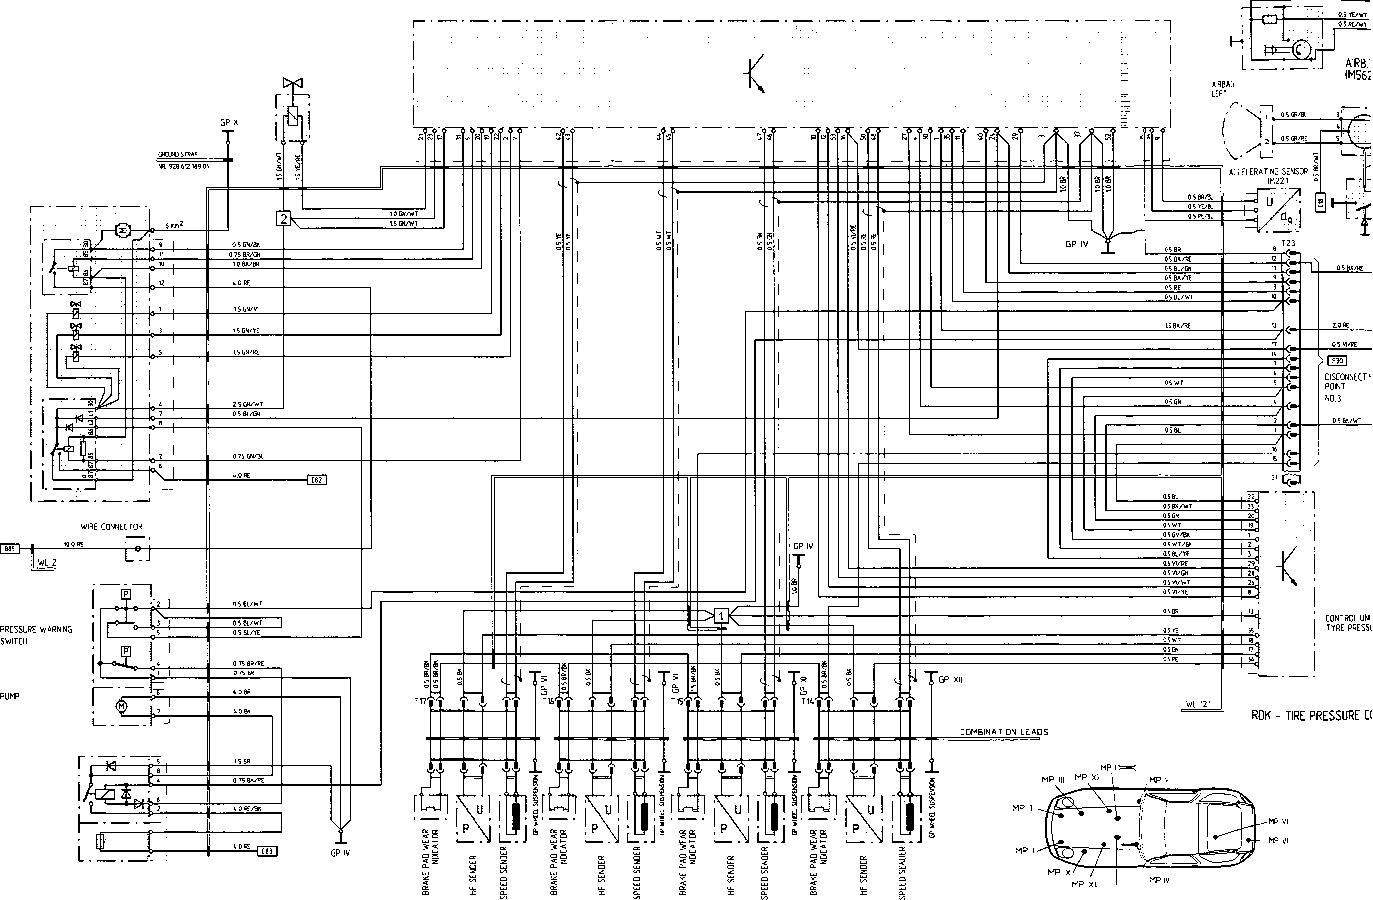 hight resolution of porsche 964 abs wiring diagram wire diagram porsche 964 abs wiring diagram porsche 964 abs wiring